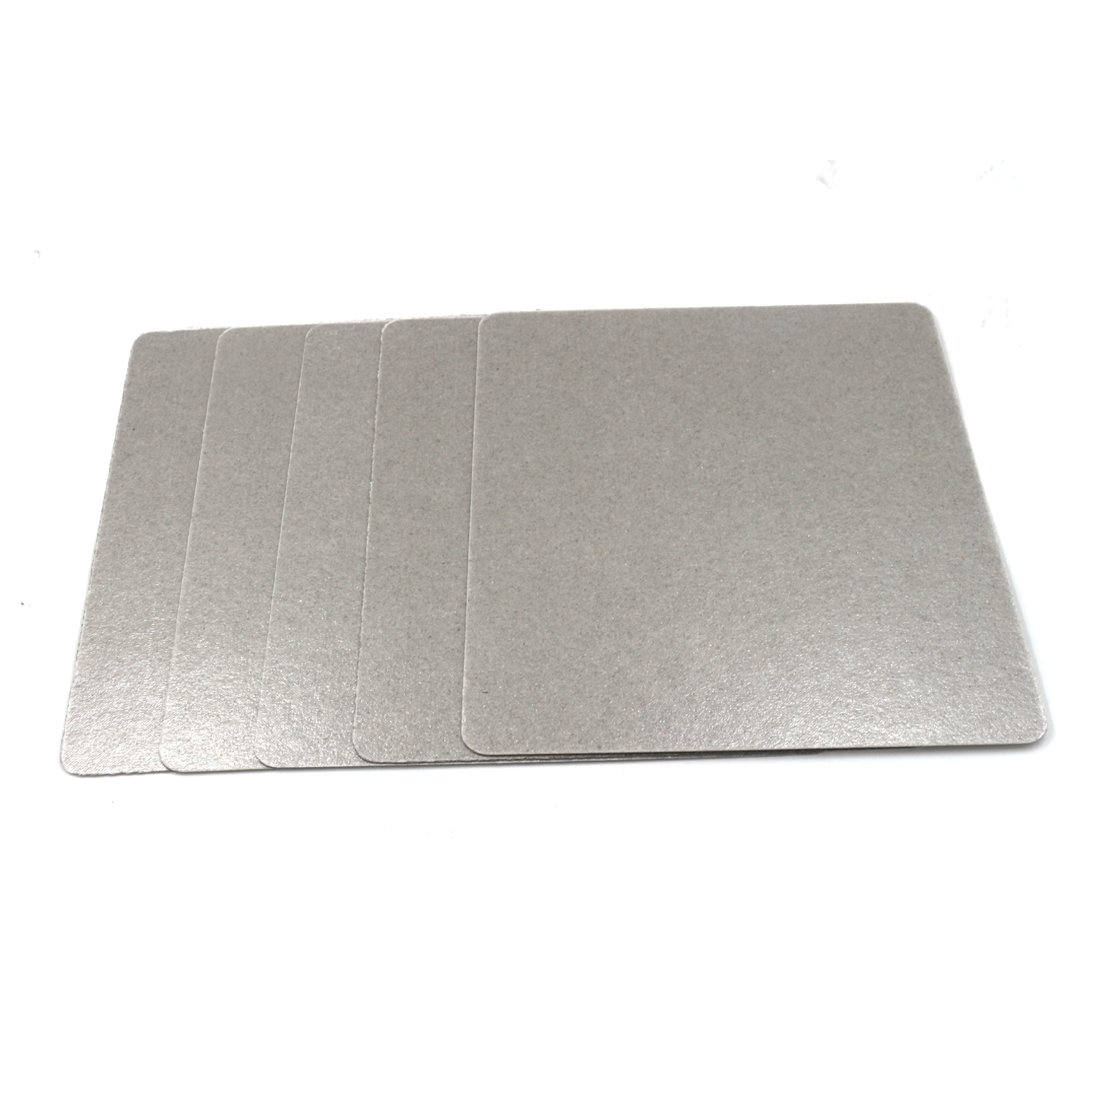 """5 Pcs 5.9"""" x 4.7"""" Microwave Oven Repairing Part Mica Plates Sheets"""